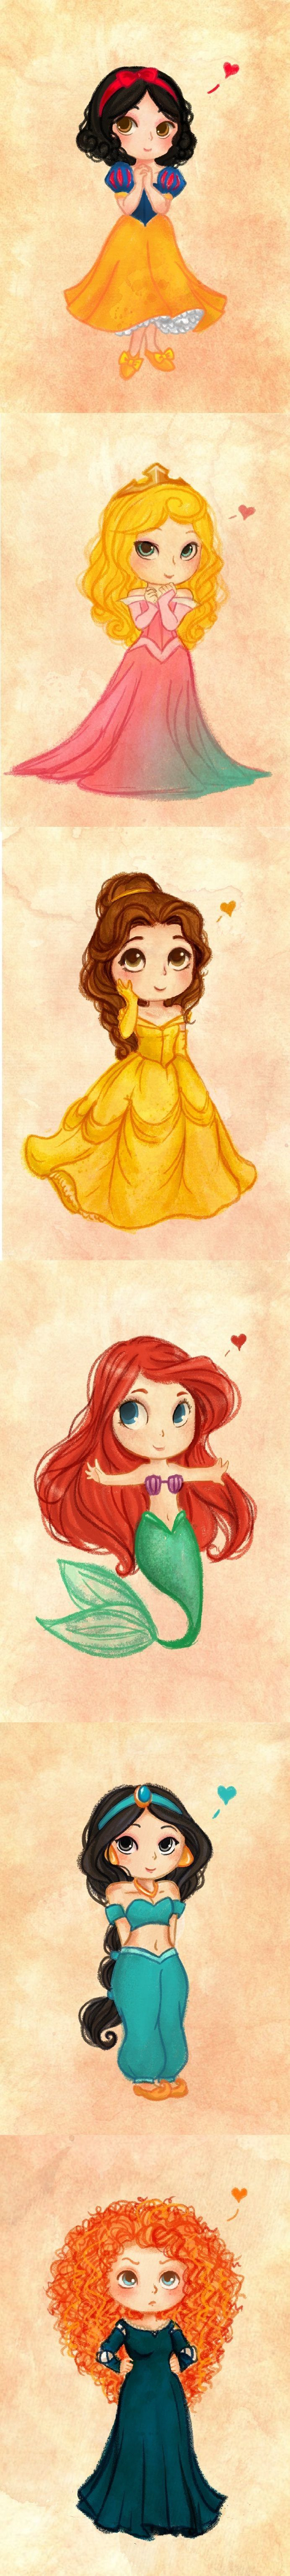 Easy Cartoon Drawings Of Disney Characters Disney Princess